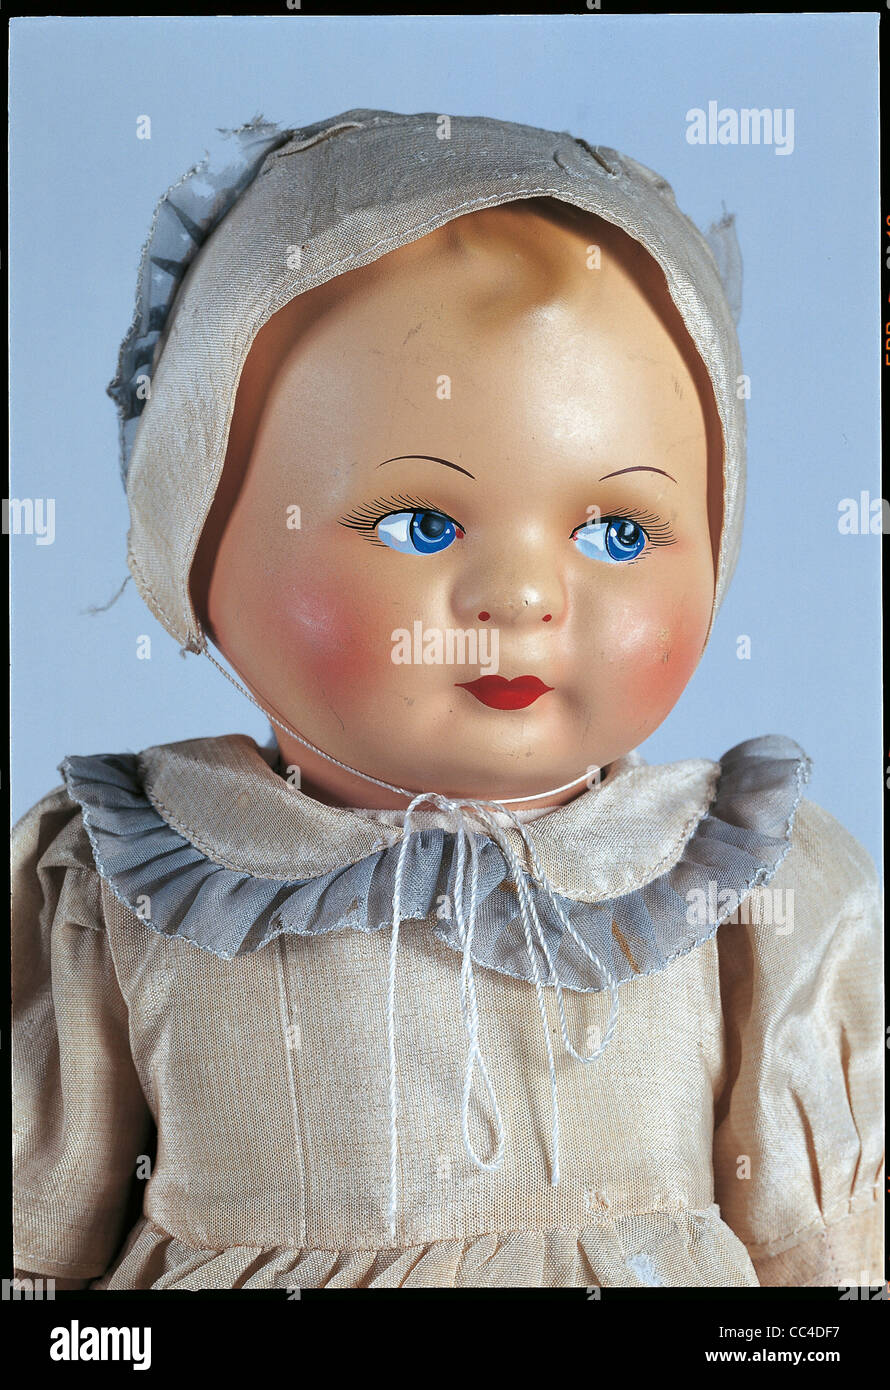 Collecting: Baby Doll Collectors 'First 900 Years Until '40 Biscuit Fabric Padded Cardboard And Part. - Stock Image